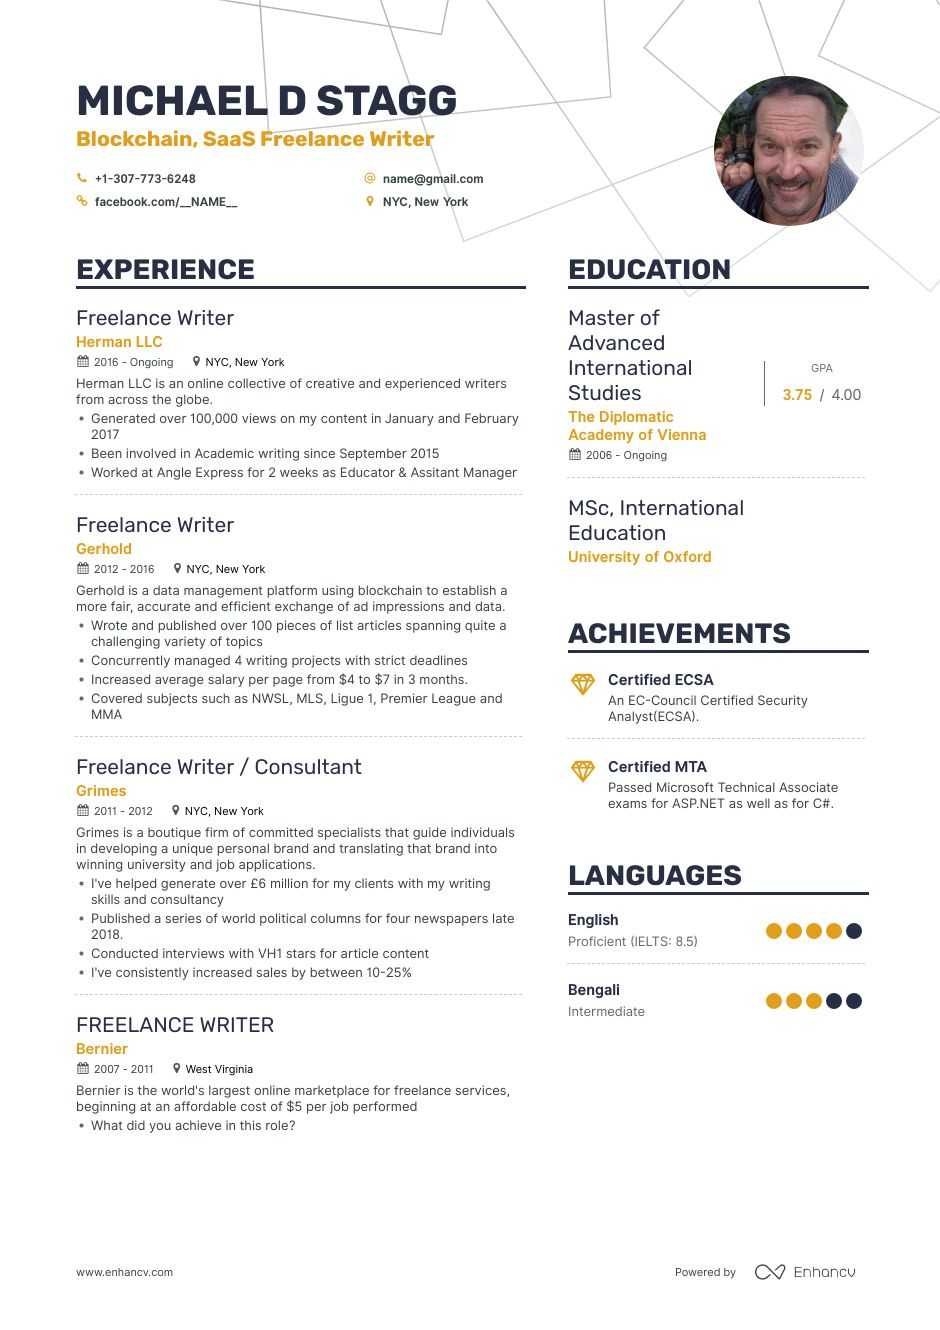 freelance writer resume examples and skills you need to get hired technical samples asset Resume Technical Writer Resume Samples